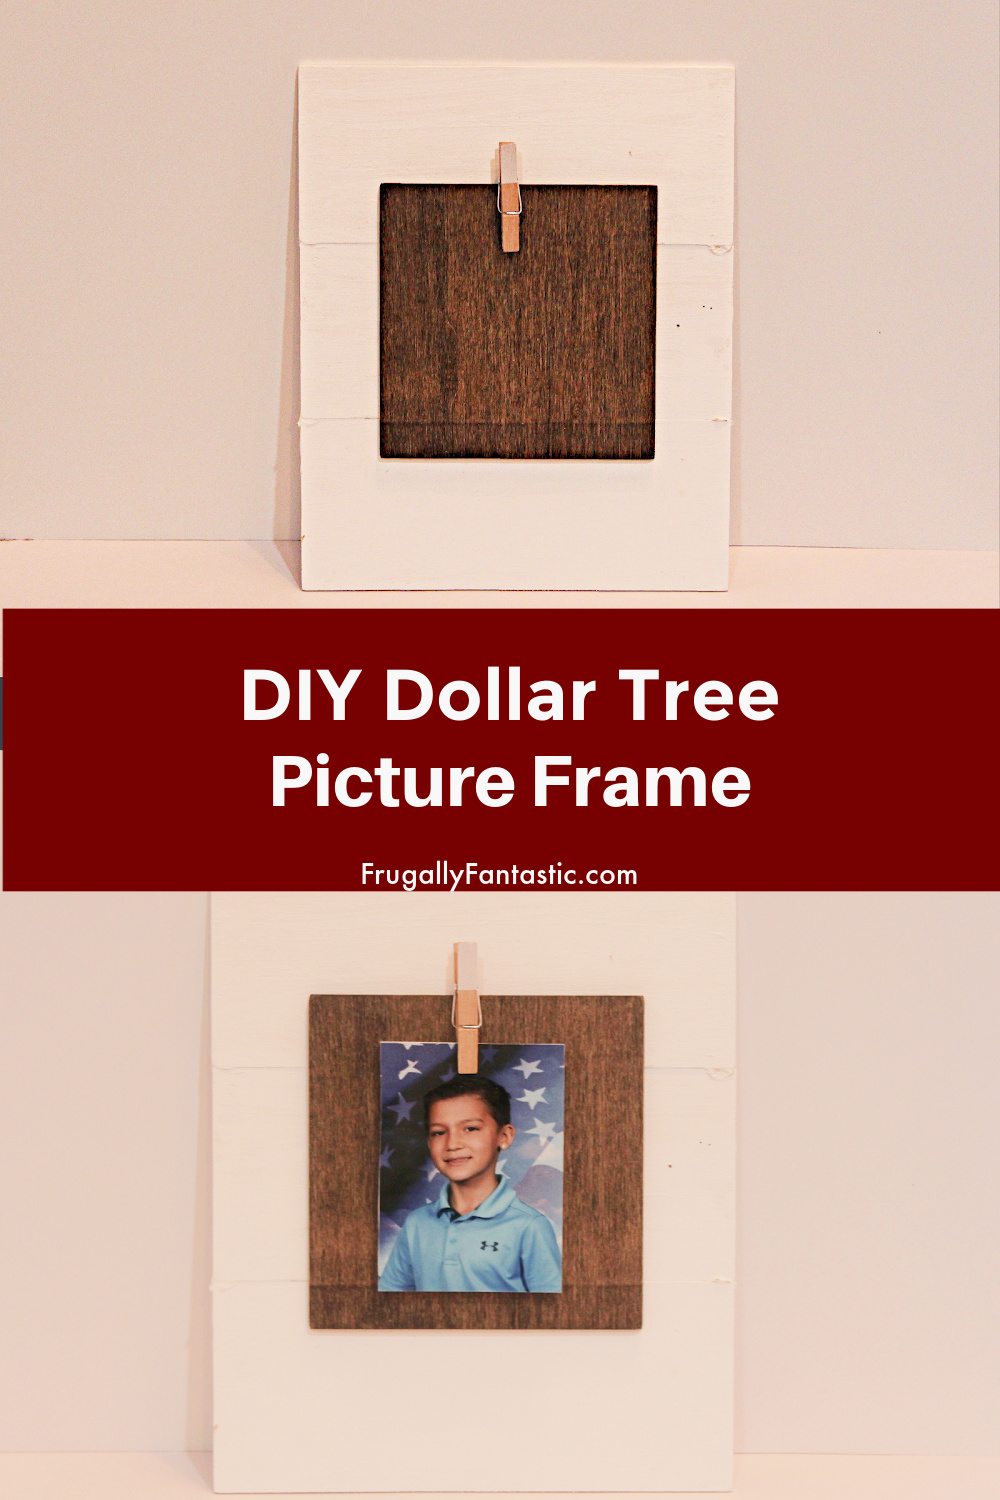 DIY Dollar Tree Picture Frame FrugallyFantastic.com